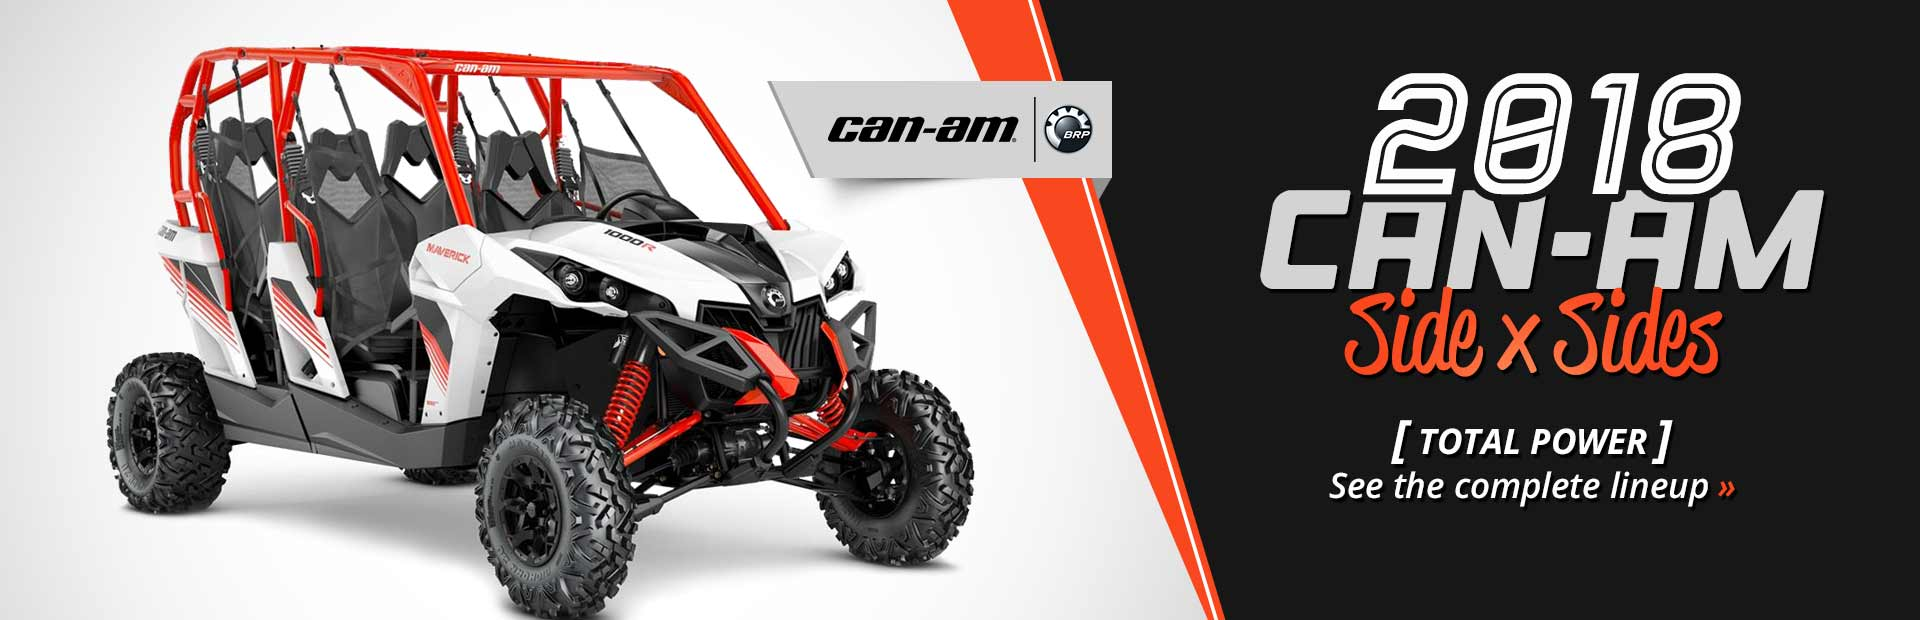 2018 Can-Am Side x Sides: Click here to view the models.